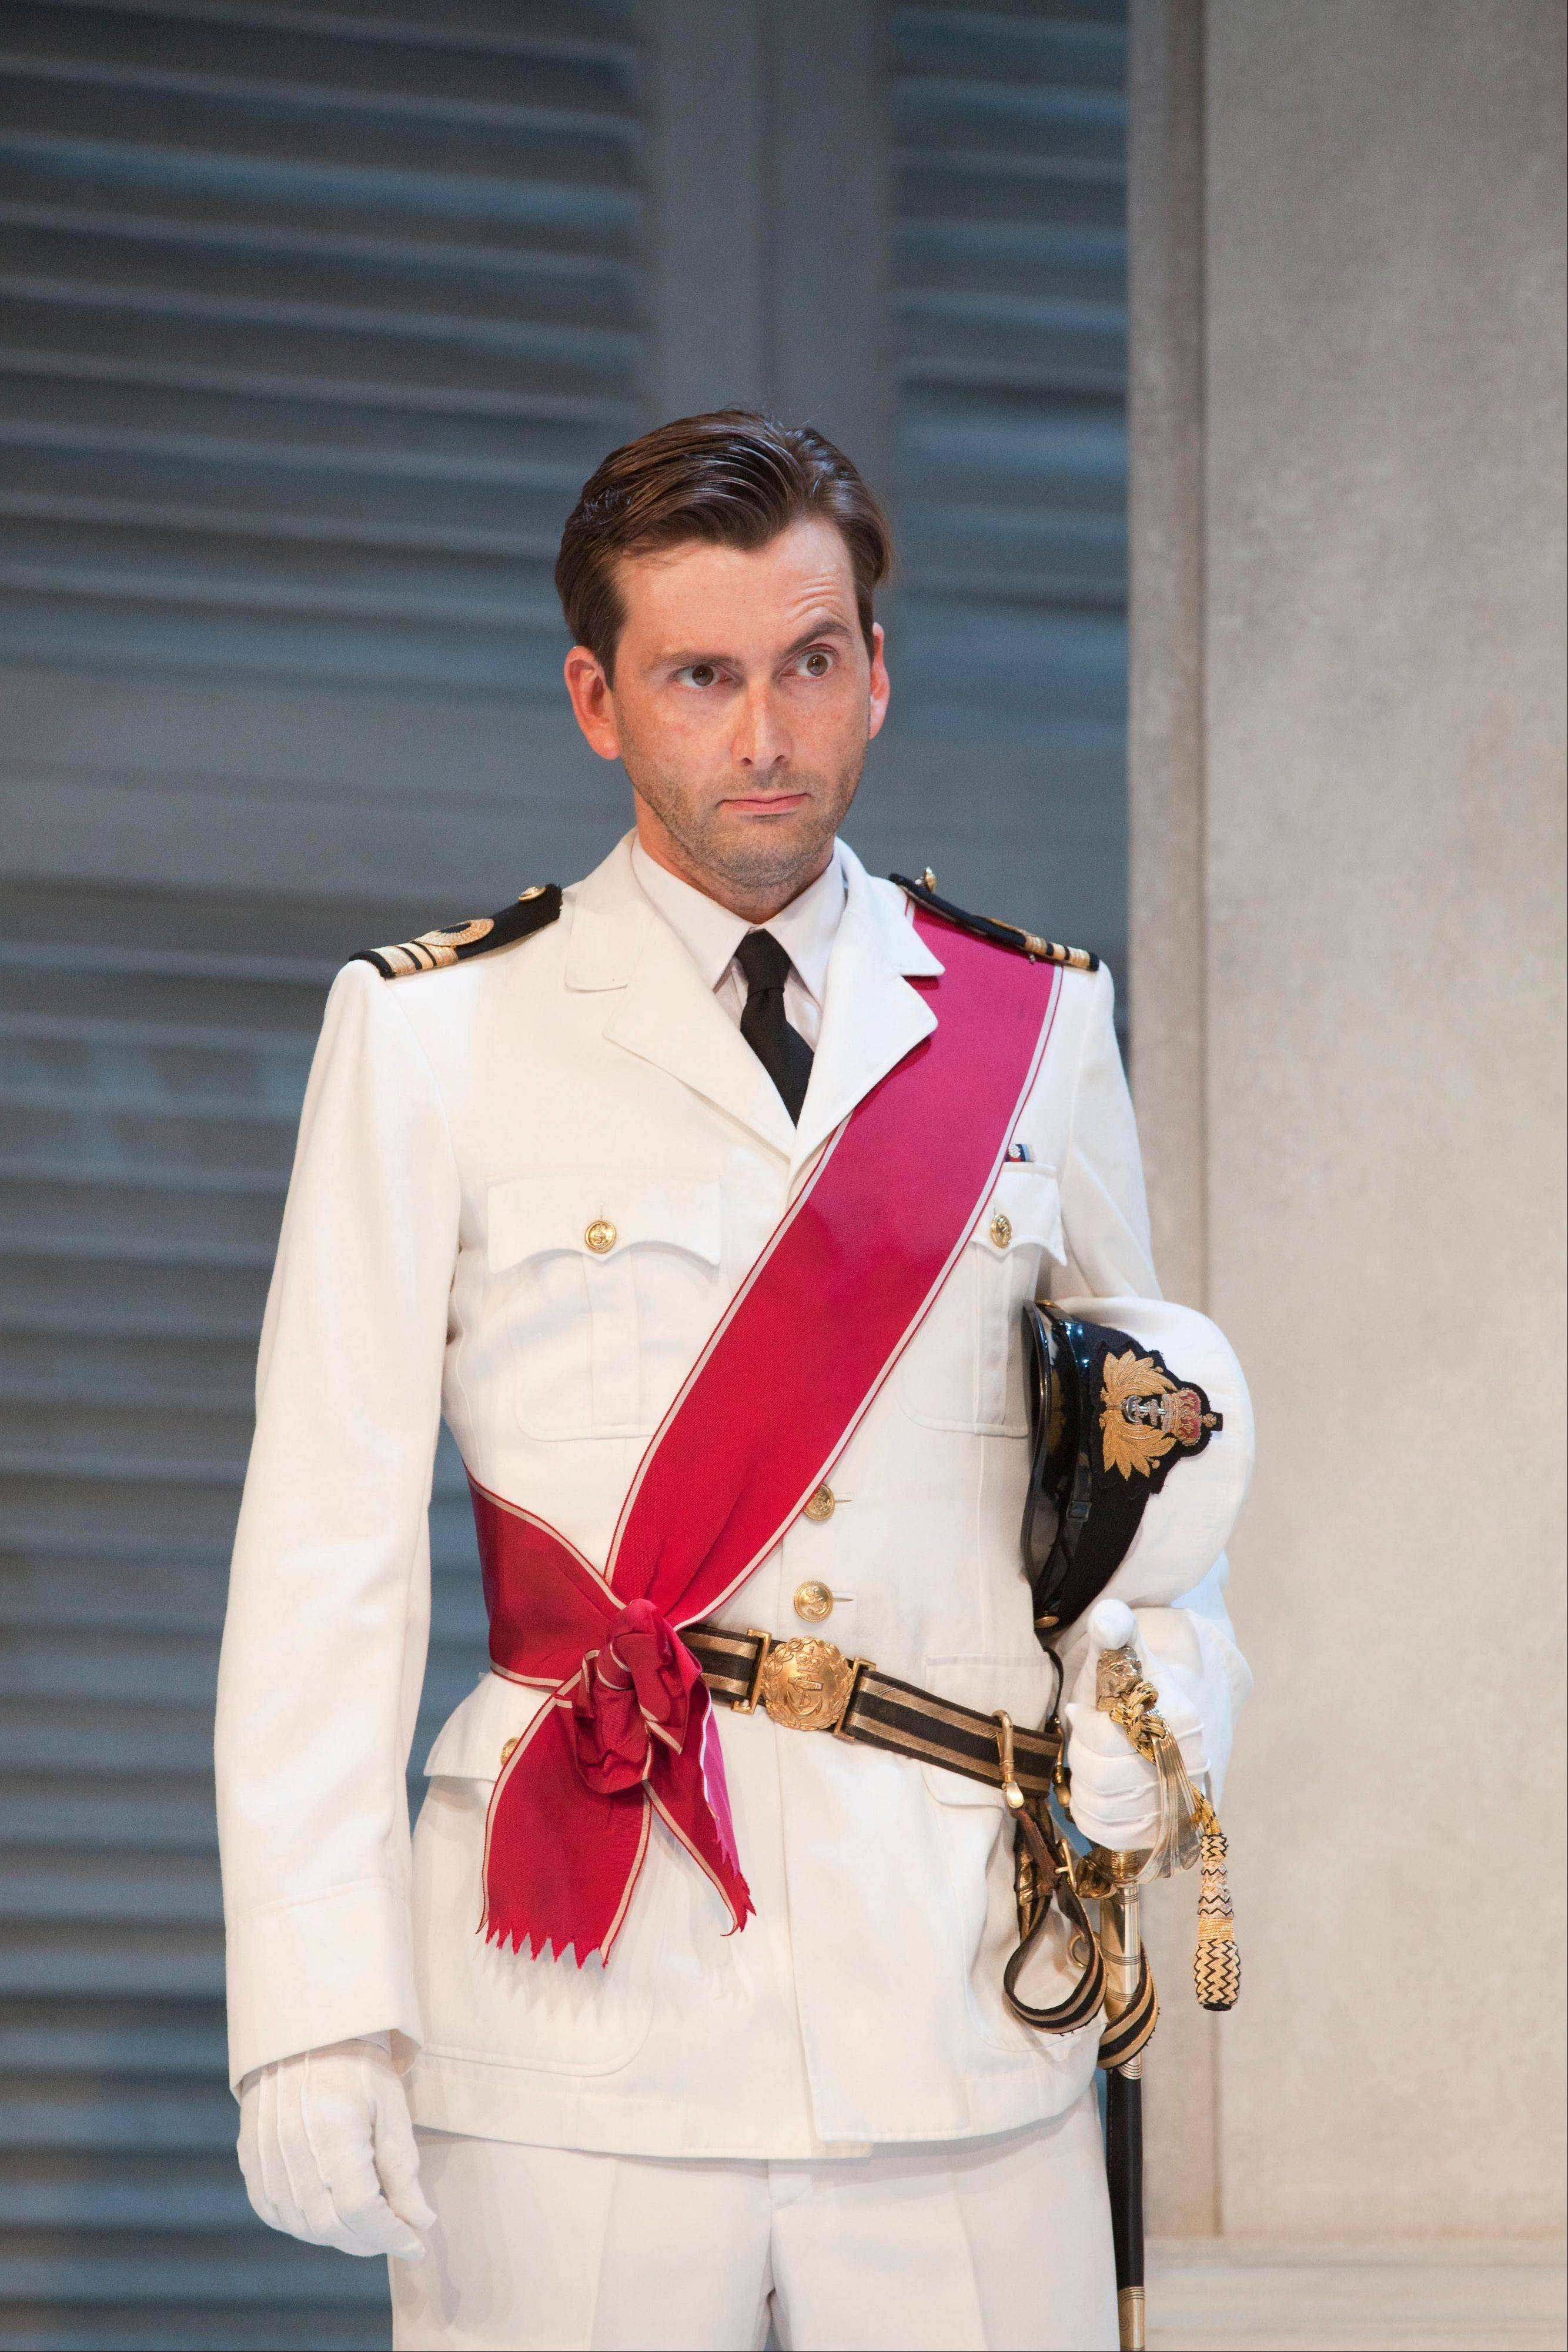 """Doctor Who"" star David Tennant starred as Benedick in a 2011 London stage version of Shakespeare's romantic comedy ""Much Ado About Nothing."" The hit West End production is available to download from digitaltheatre.com."